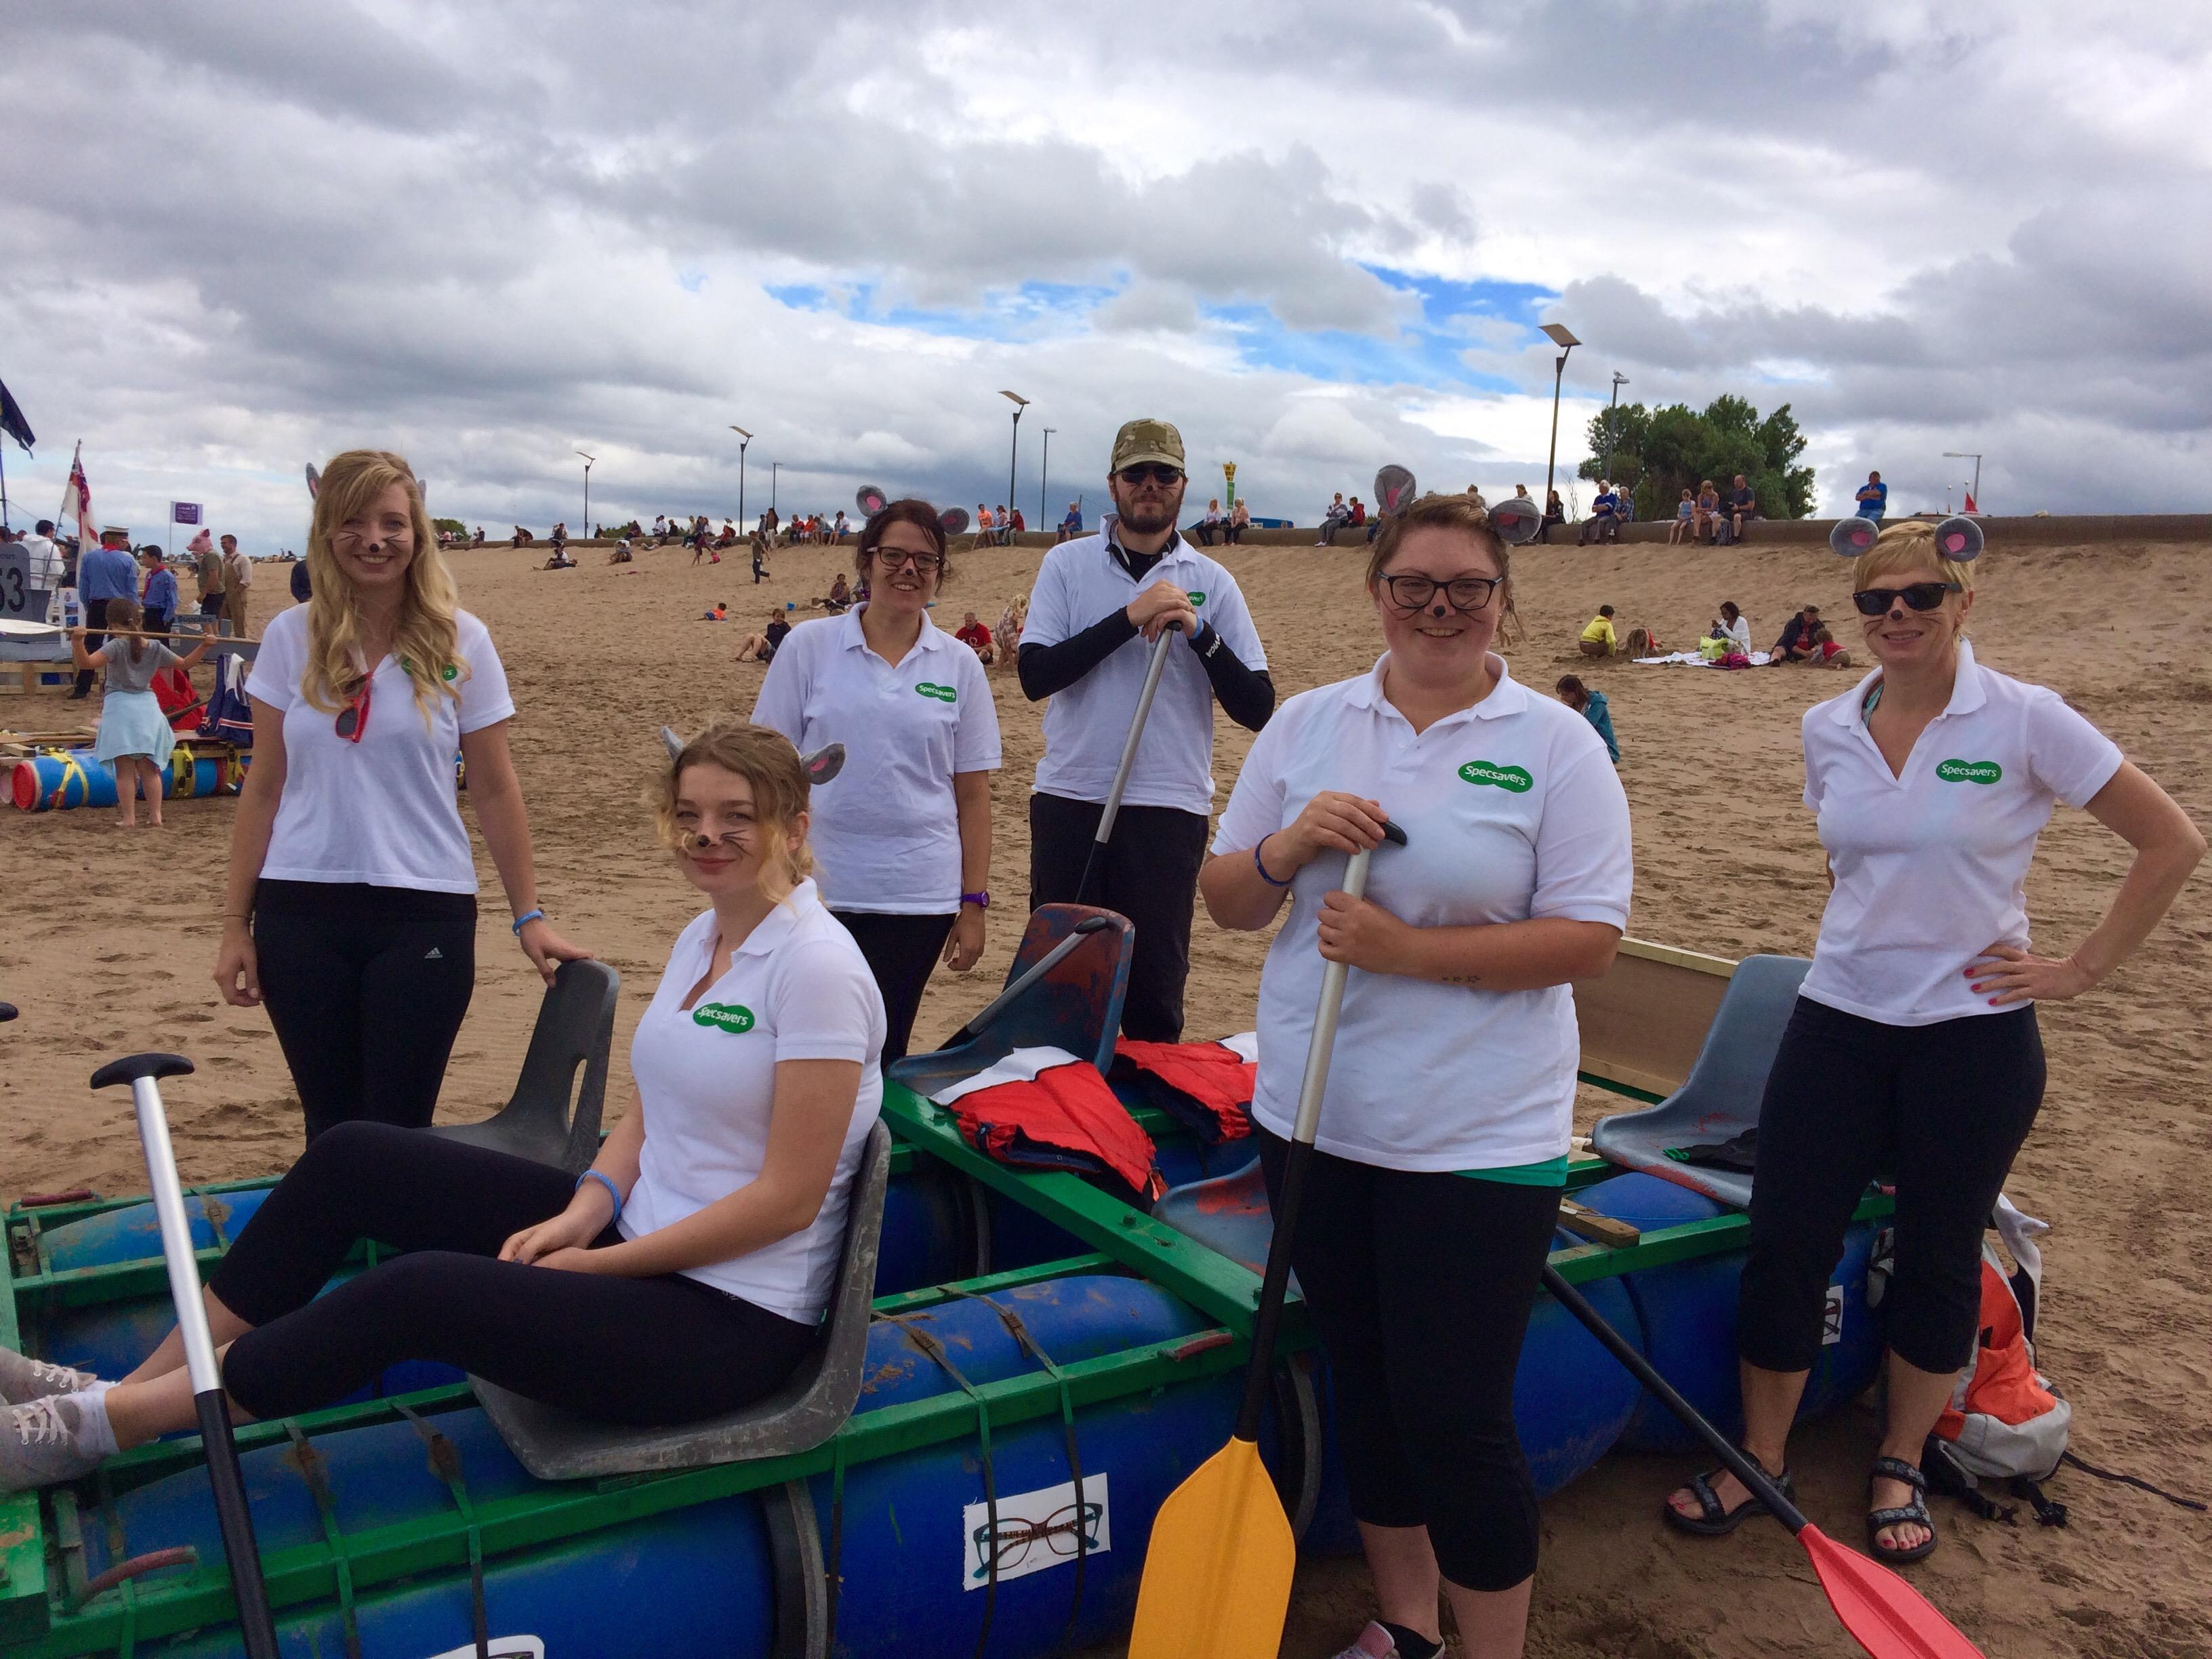 Specsavers Minehead entered the RNLI raft race to raise money for the charity